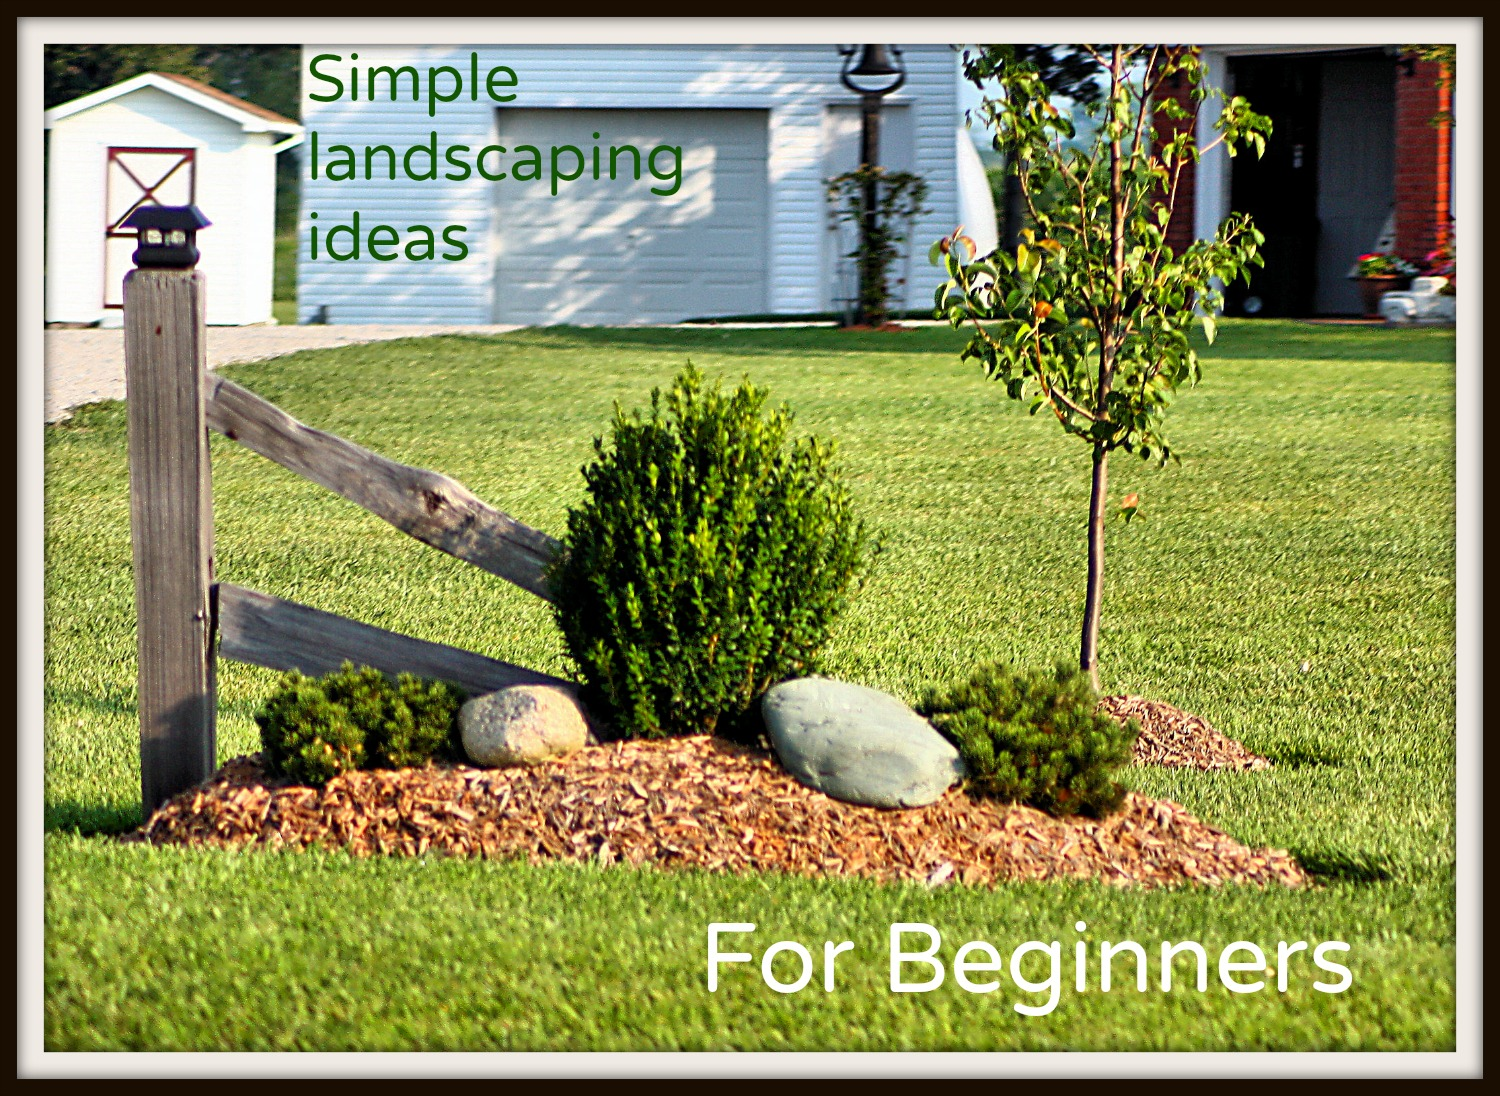 Simple landscaping ideas for beginners frador for Basic landscaping ideas for front yard